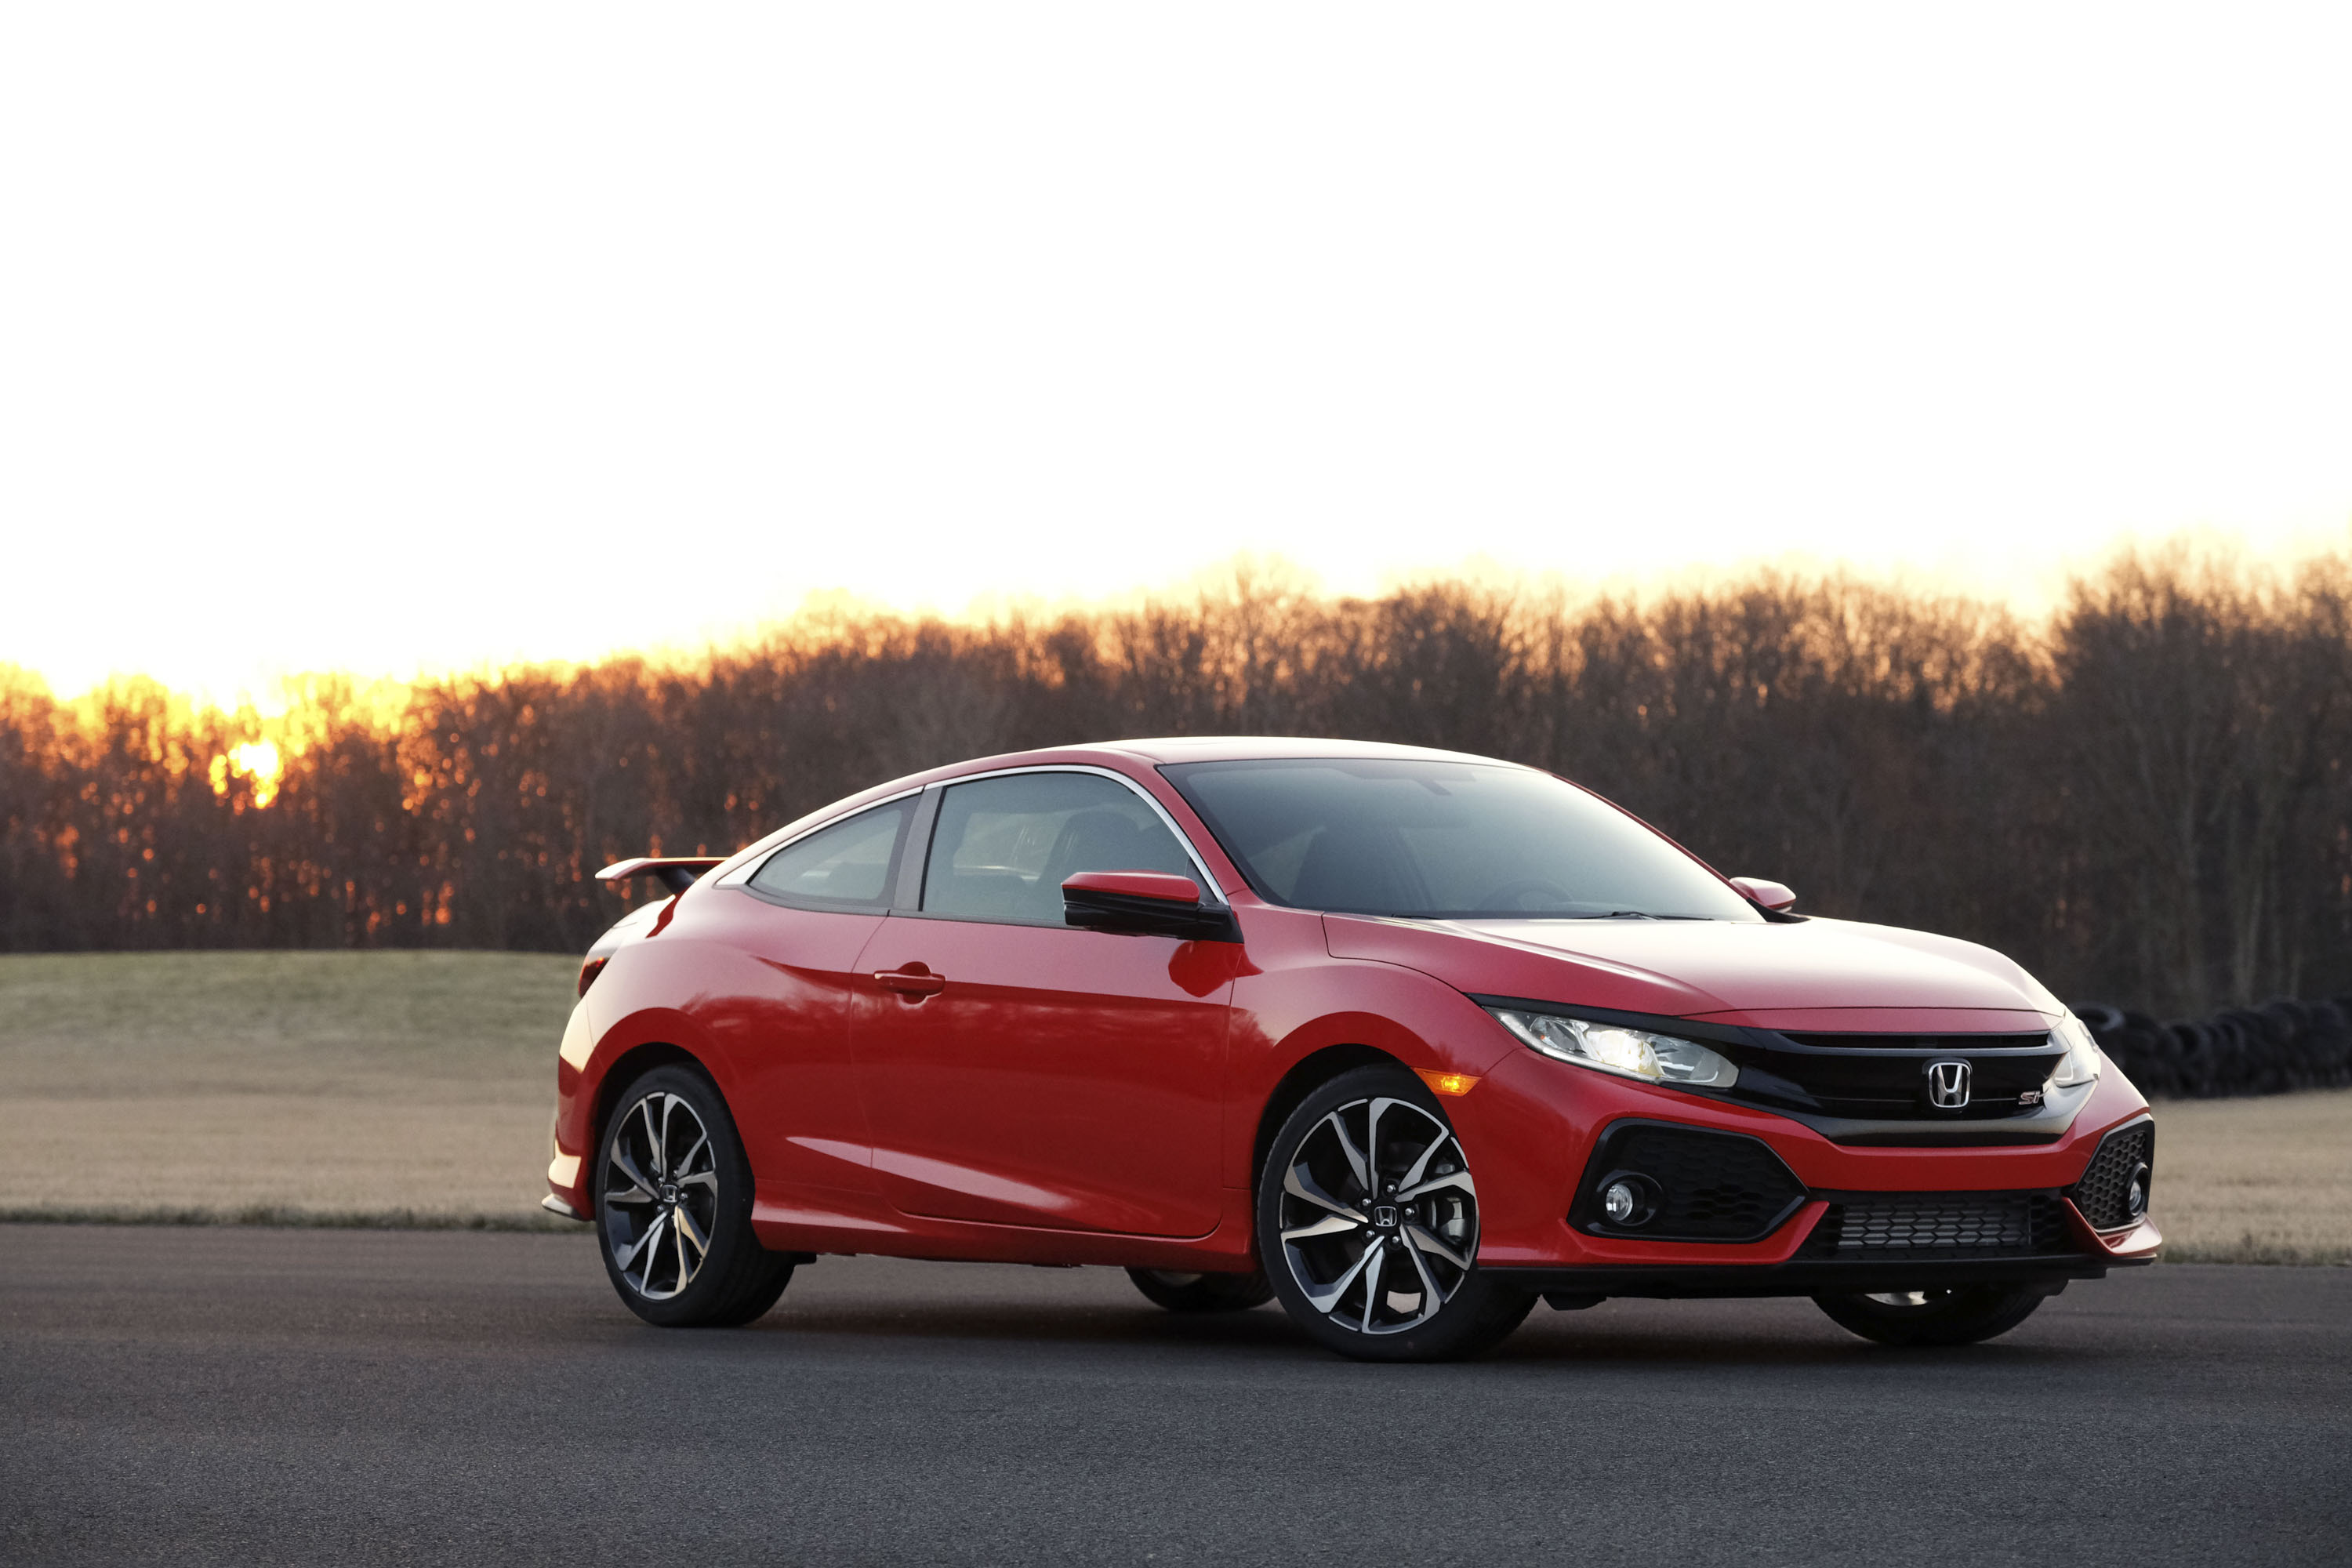 2018 Honda Civic Si Coupe Top Speed 1986 Accord Stanced